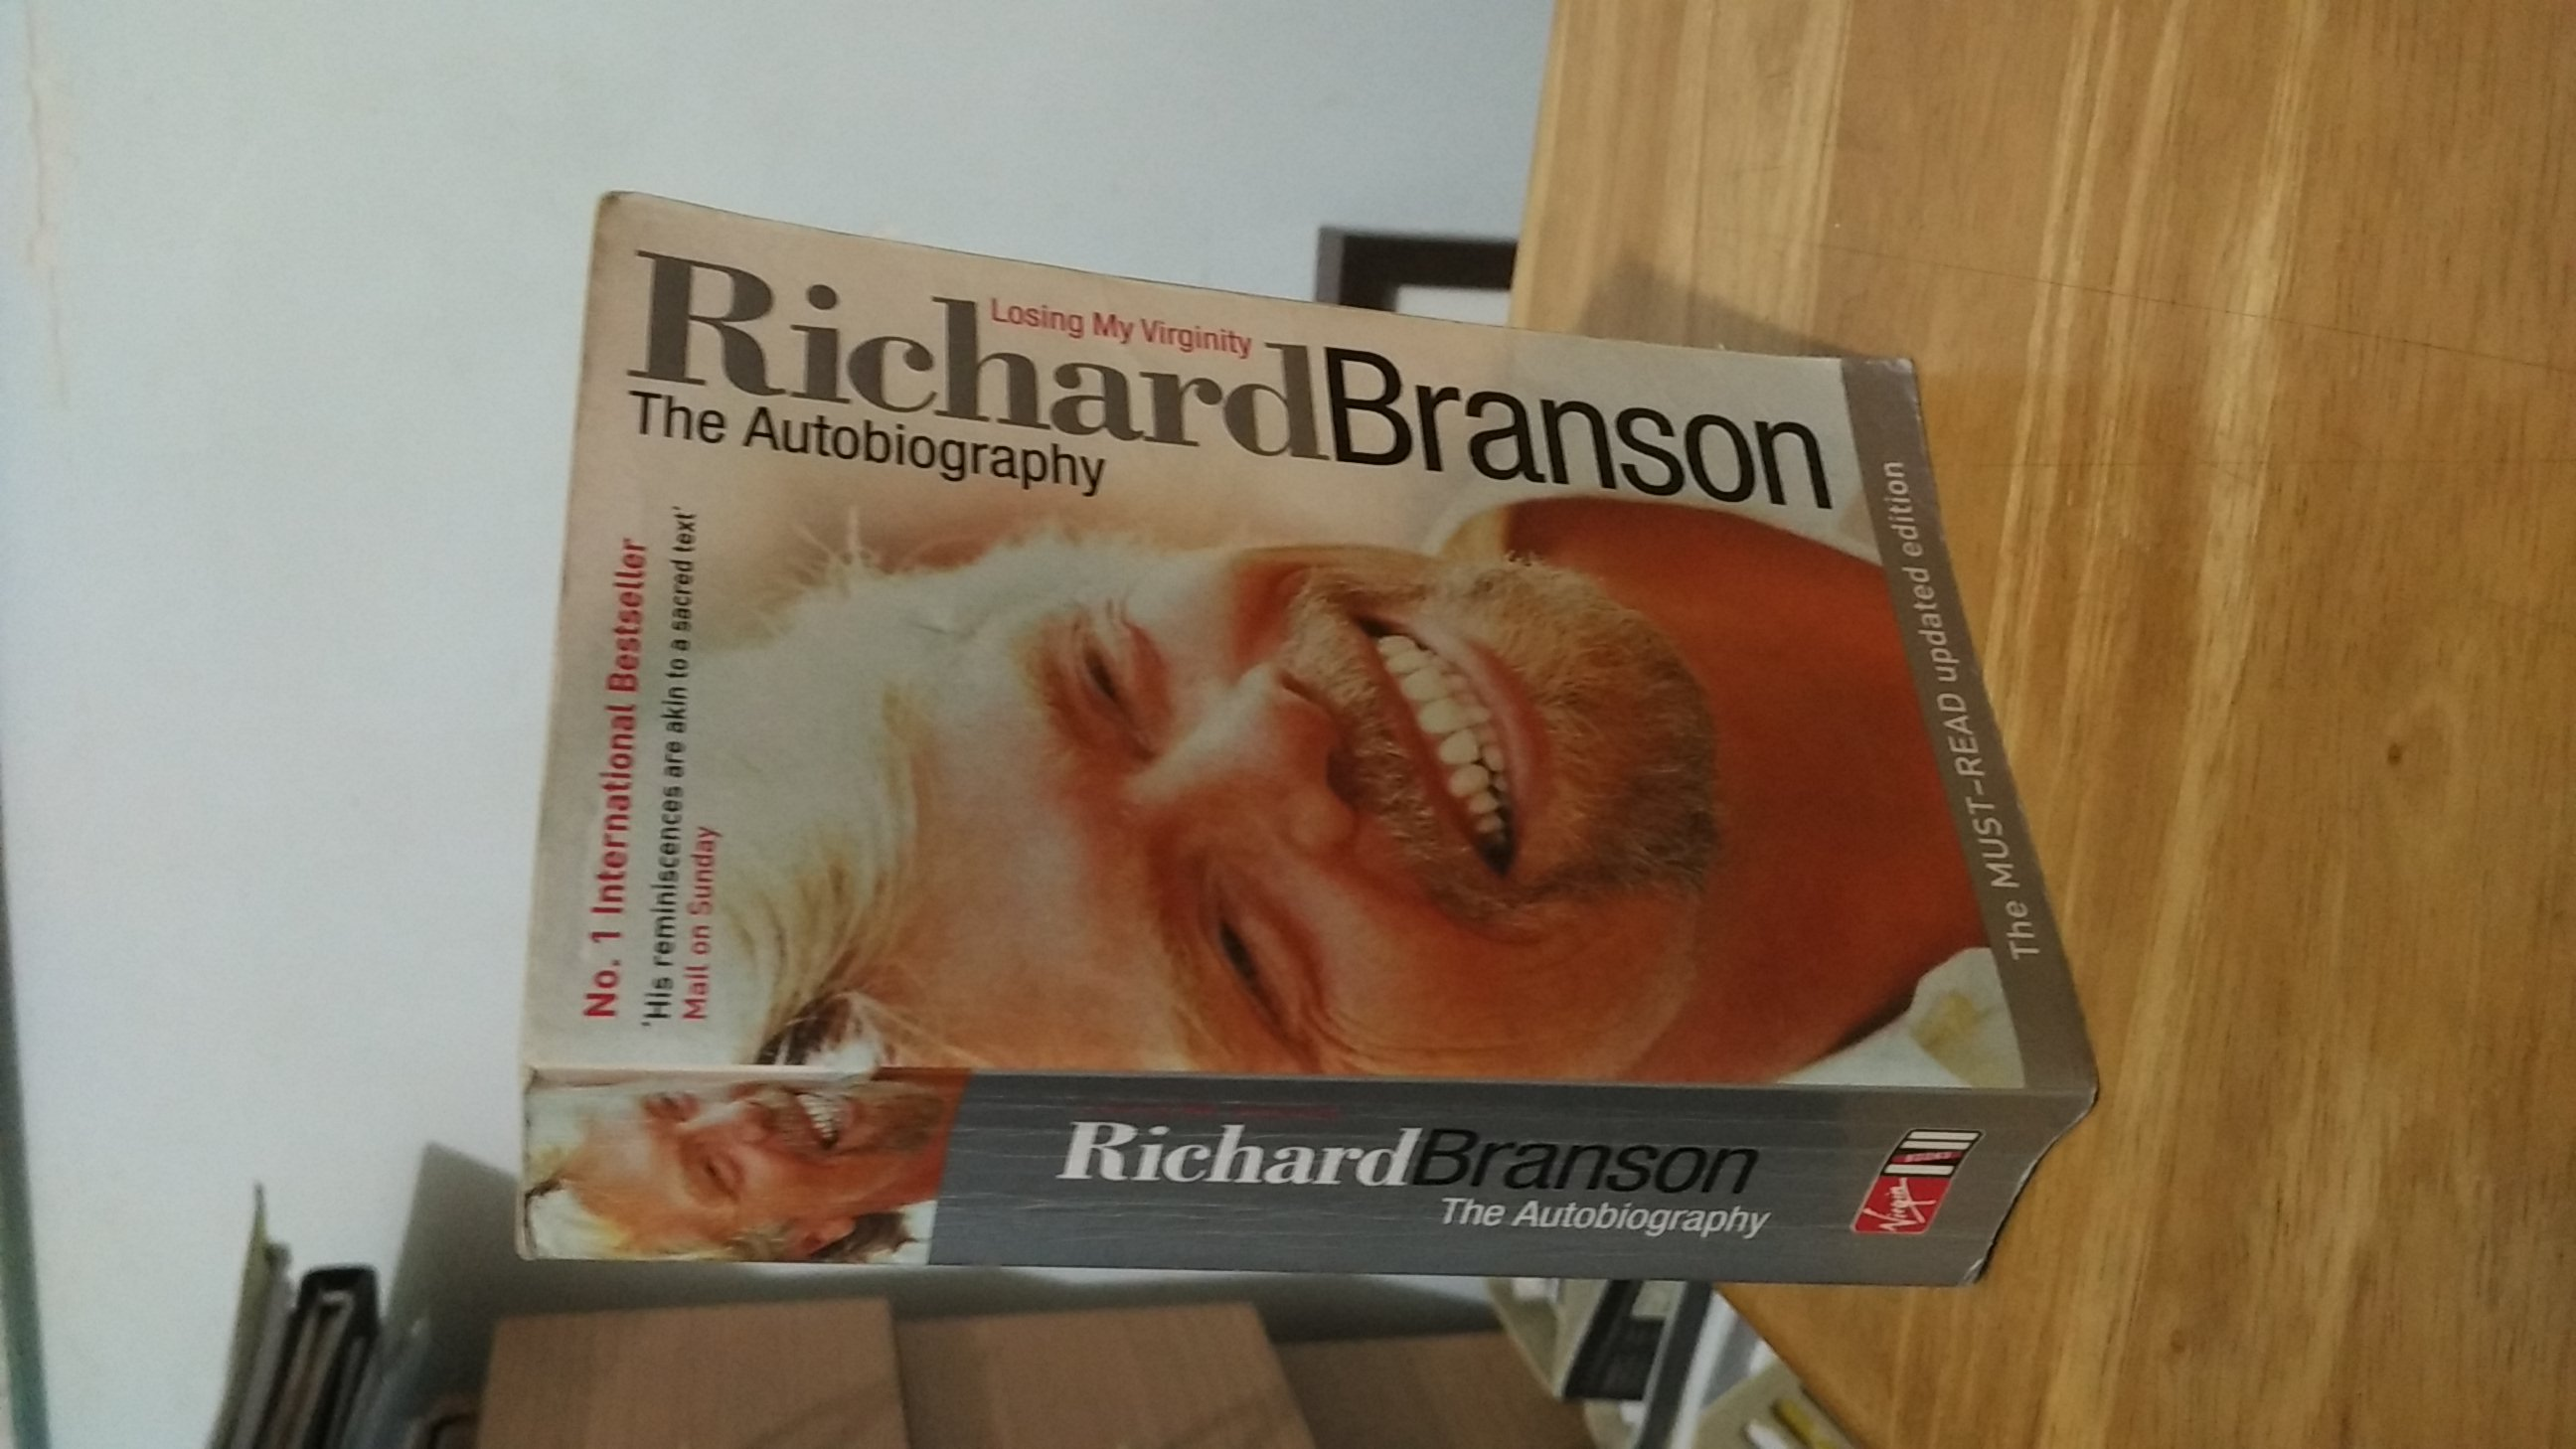 Losing My Virginity - Richard Branson The Autobiography image